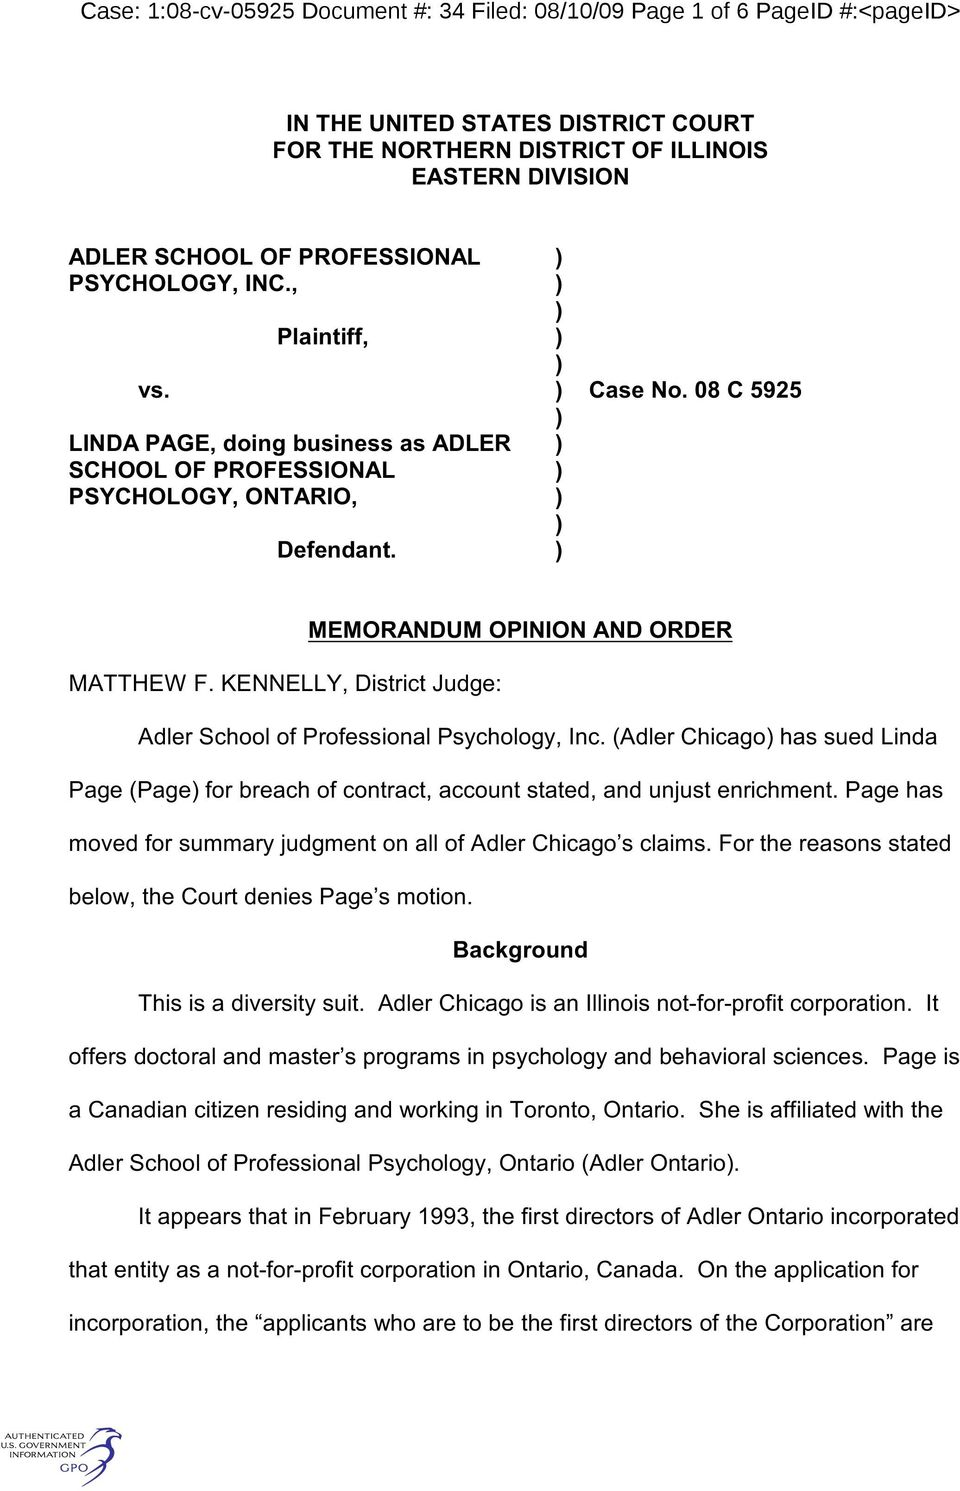 KENNELLY, District Judge: Adler School of Professional Psychology, Inc. (Adler Chicago has sued Linda Page (Page for breach of contract, account stated, and unjust enrichment.